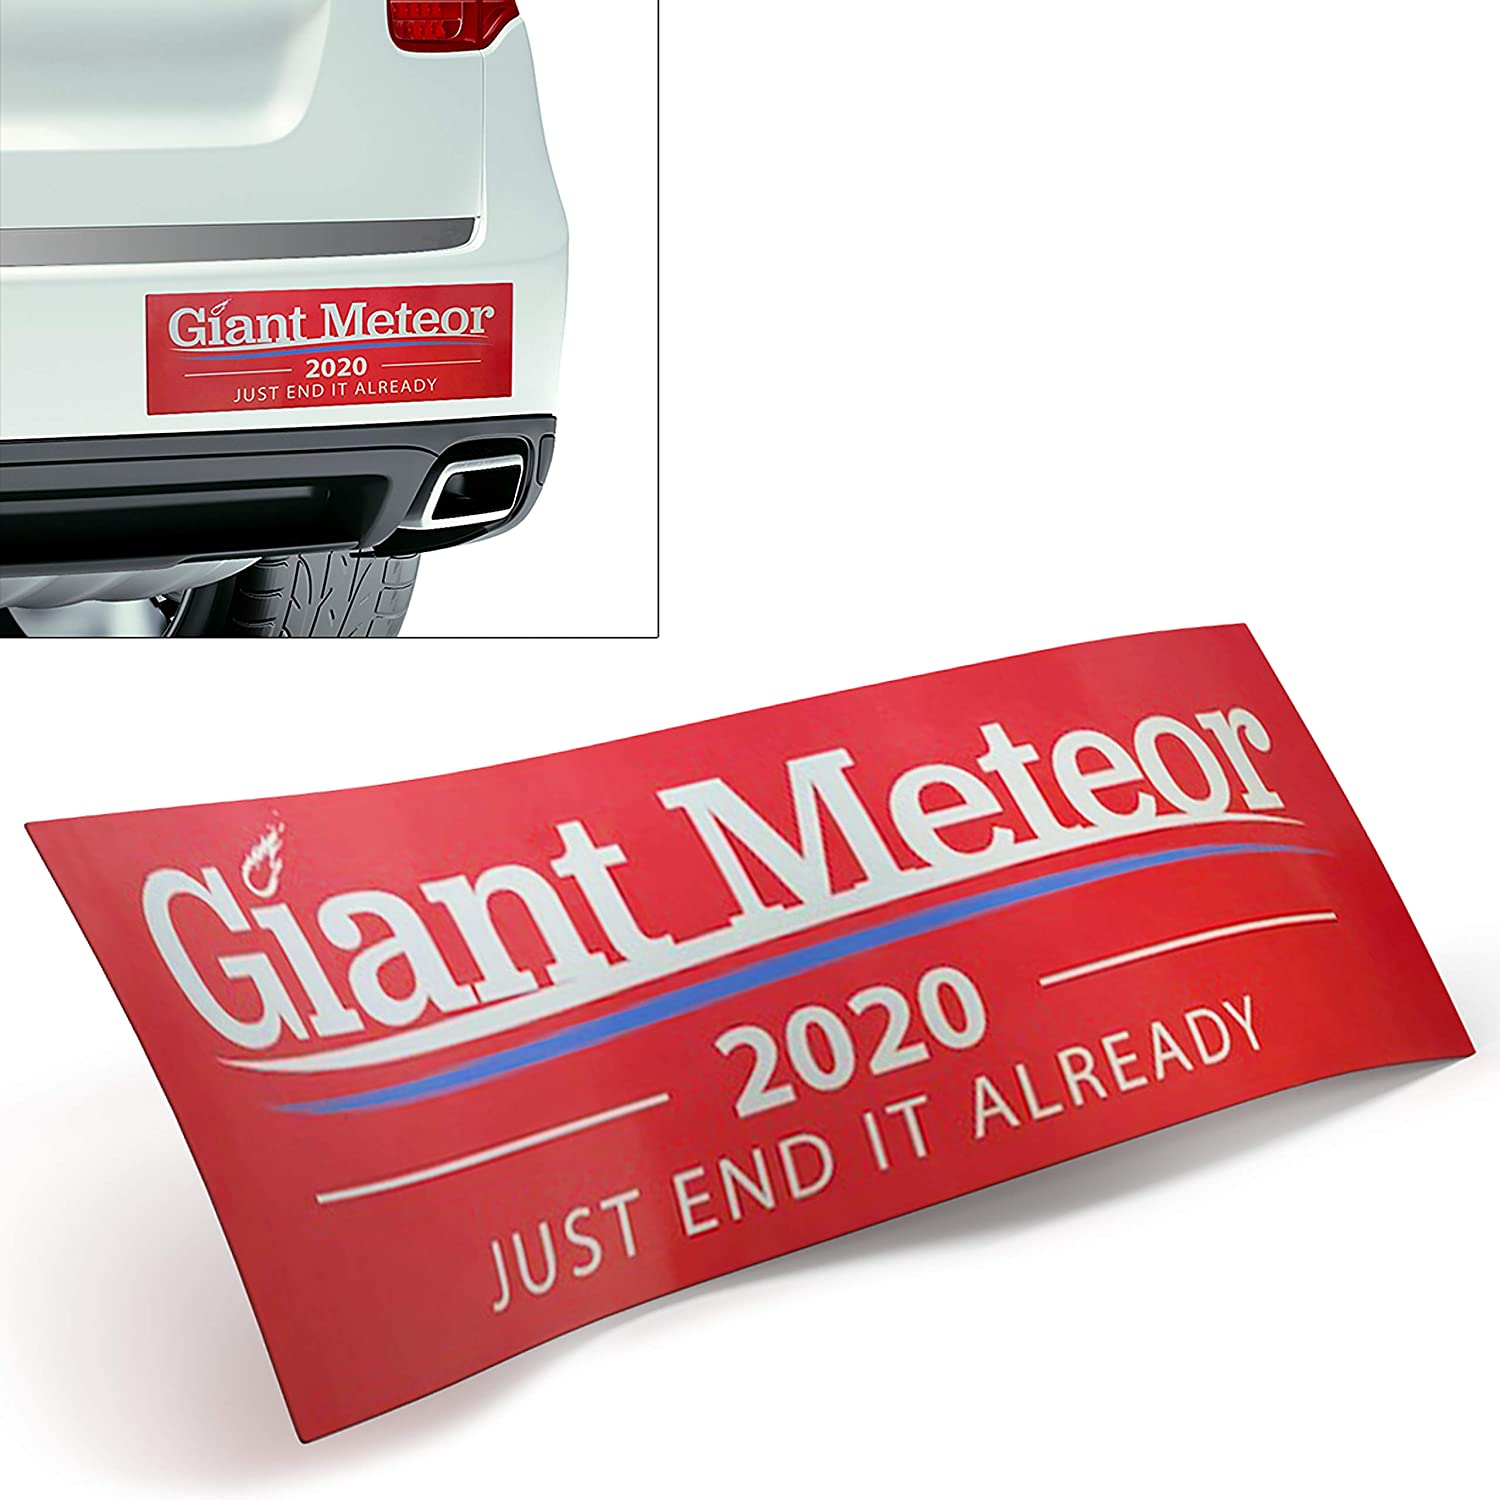 Hilarious Giant Meteor 2020 Election Year Sticker 2-Pk for Laptop, Ammo Can, Window, Truck or Car Bumper. Funny Anti-Trump, Anti-Biden Decal and Political Conversation Starter Adds Humor to Voting